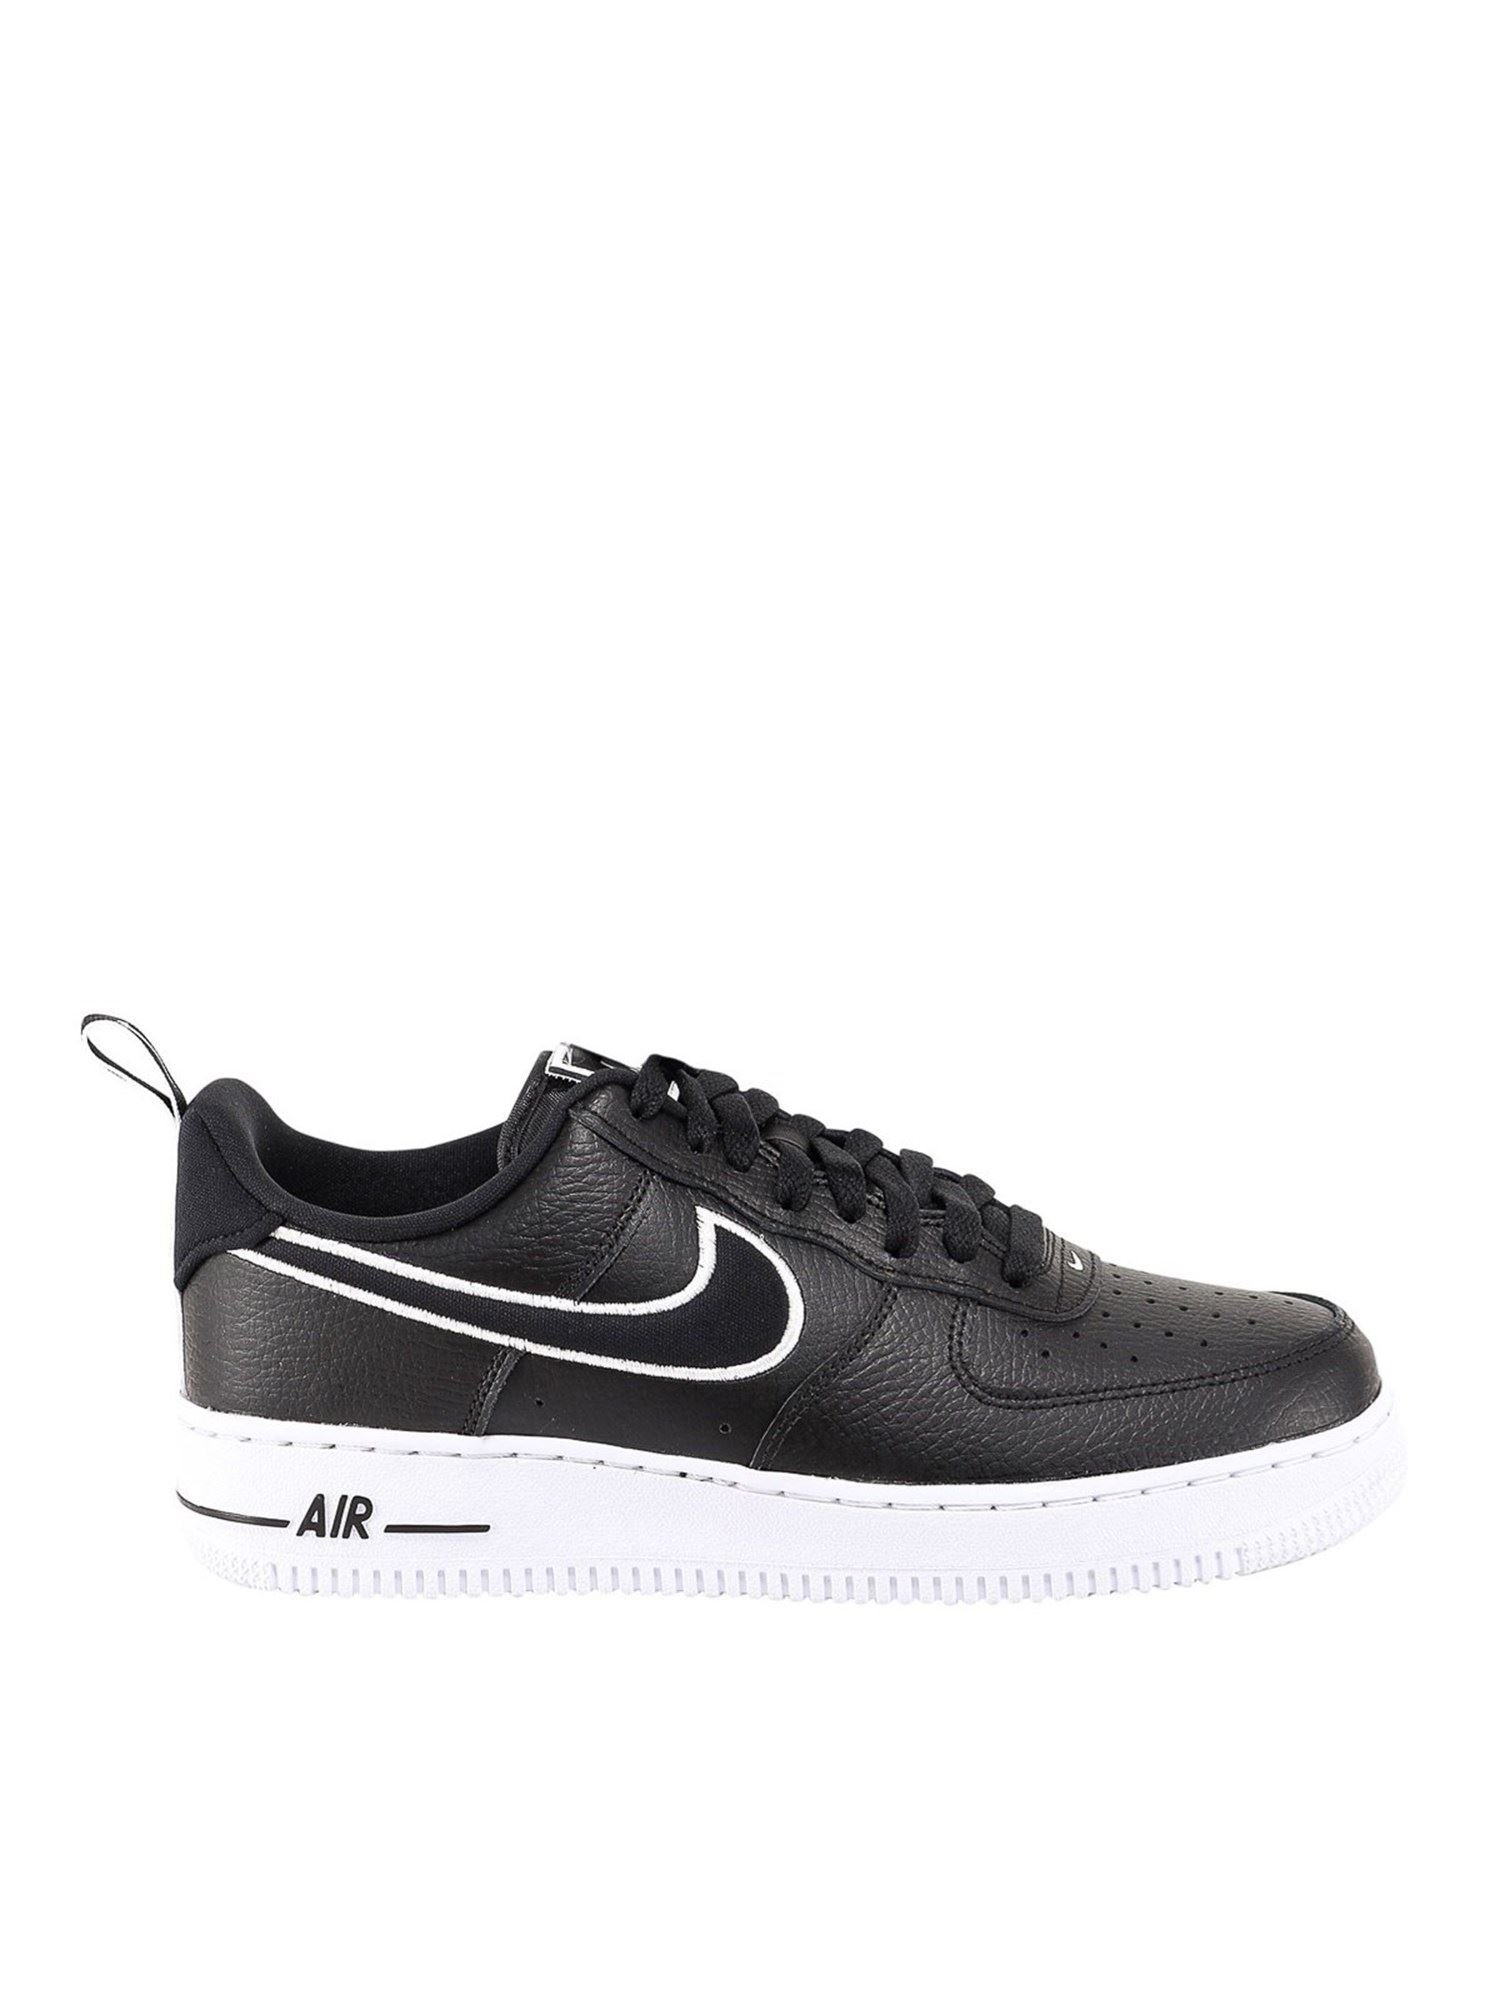 Nike AIR FORCE 1 FAUX LEATHER SNEAKERS IN BLACK